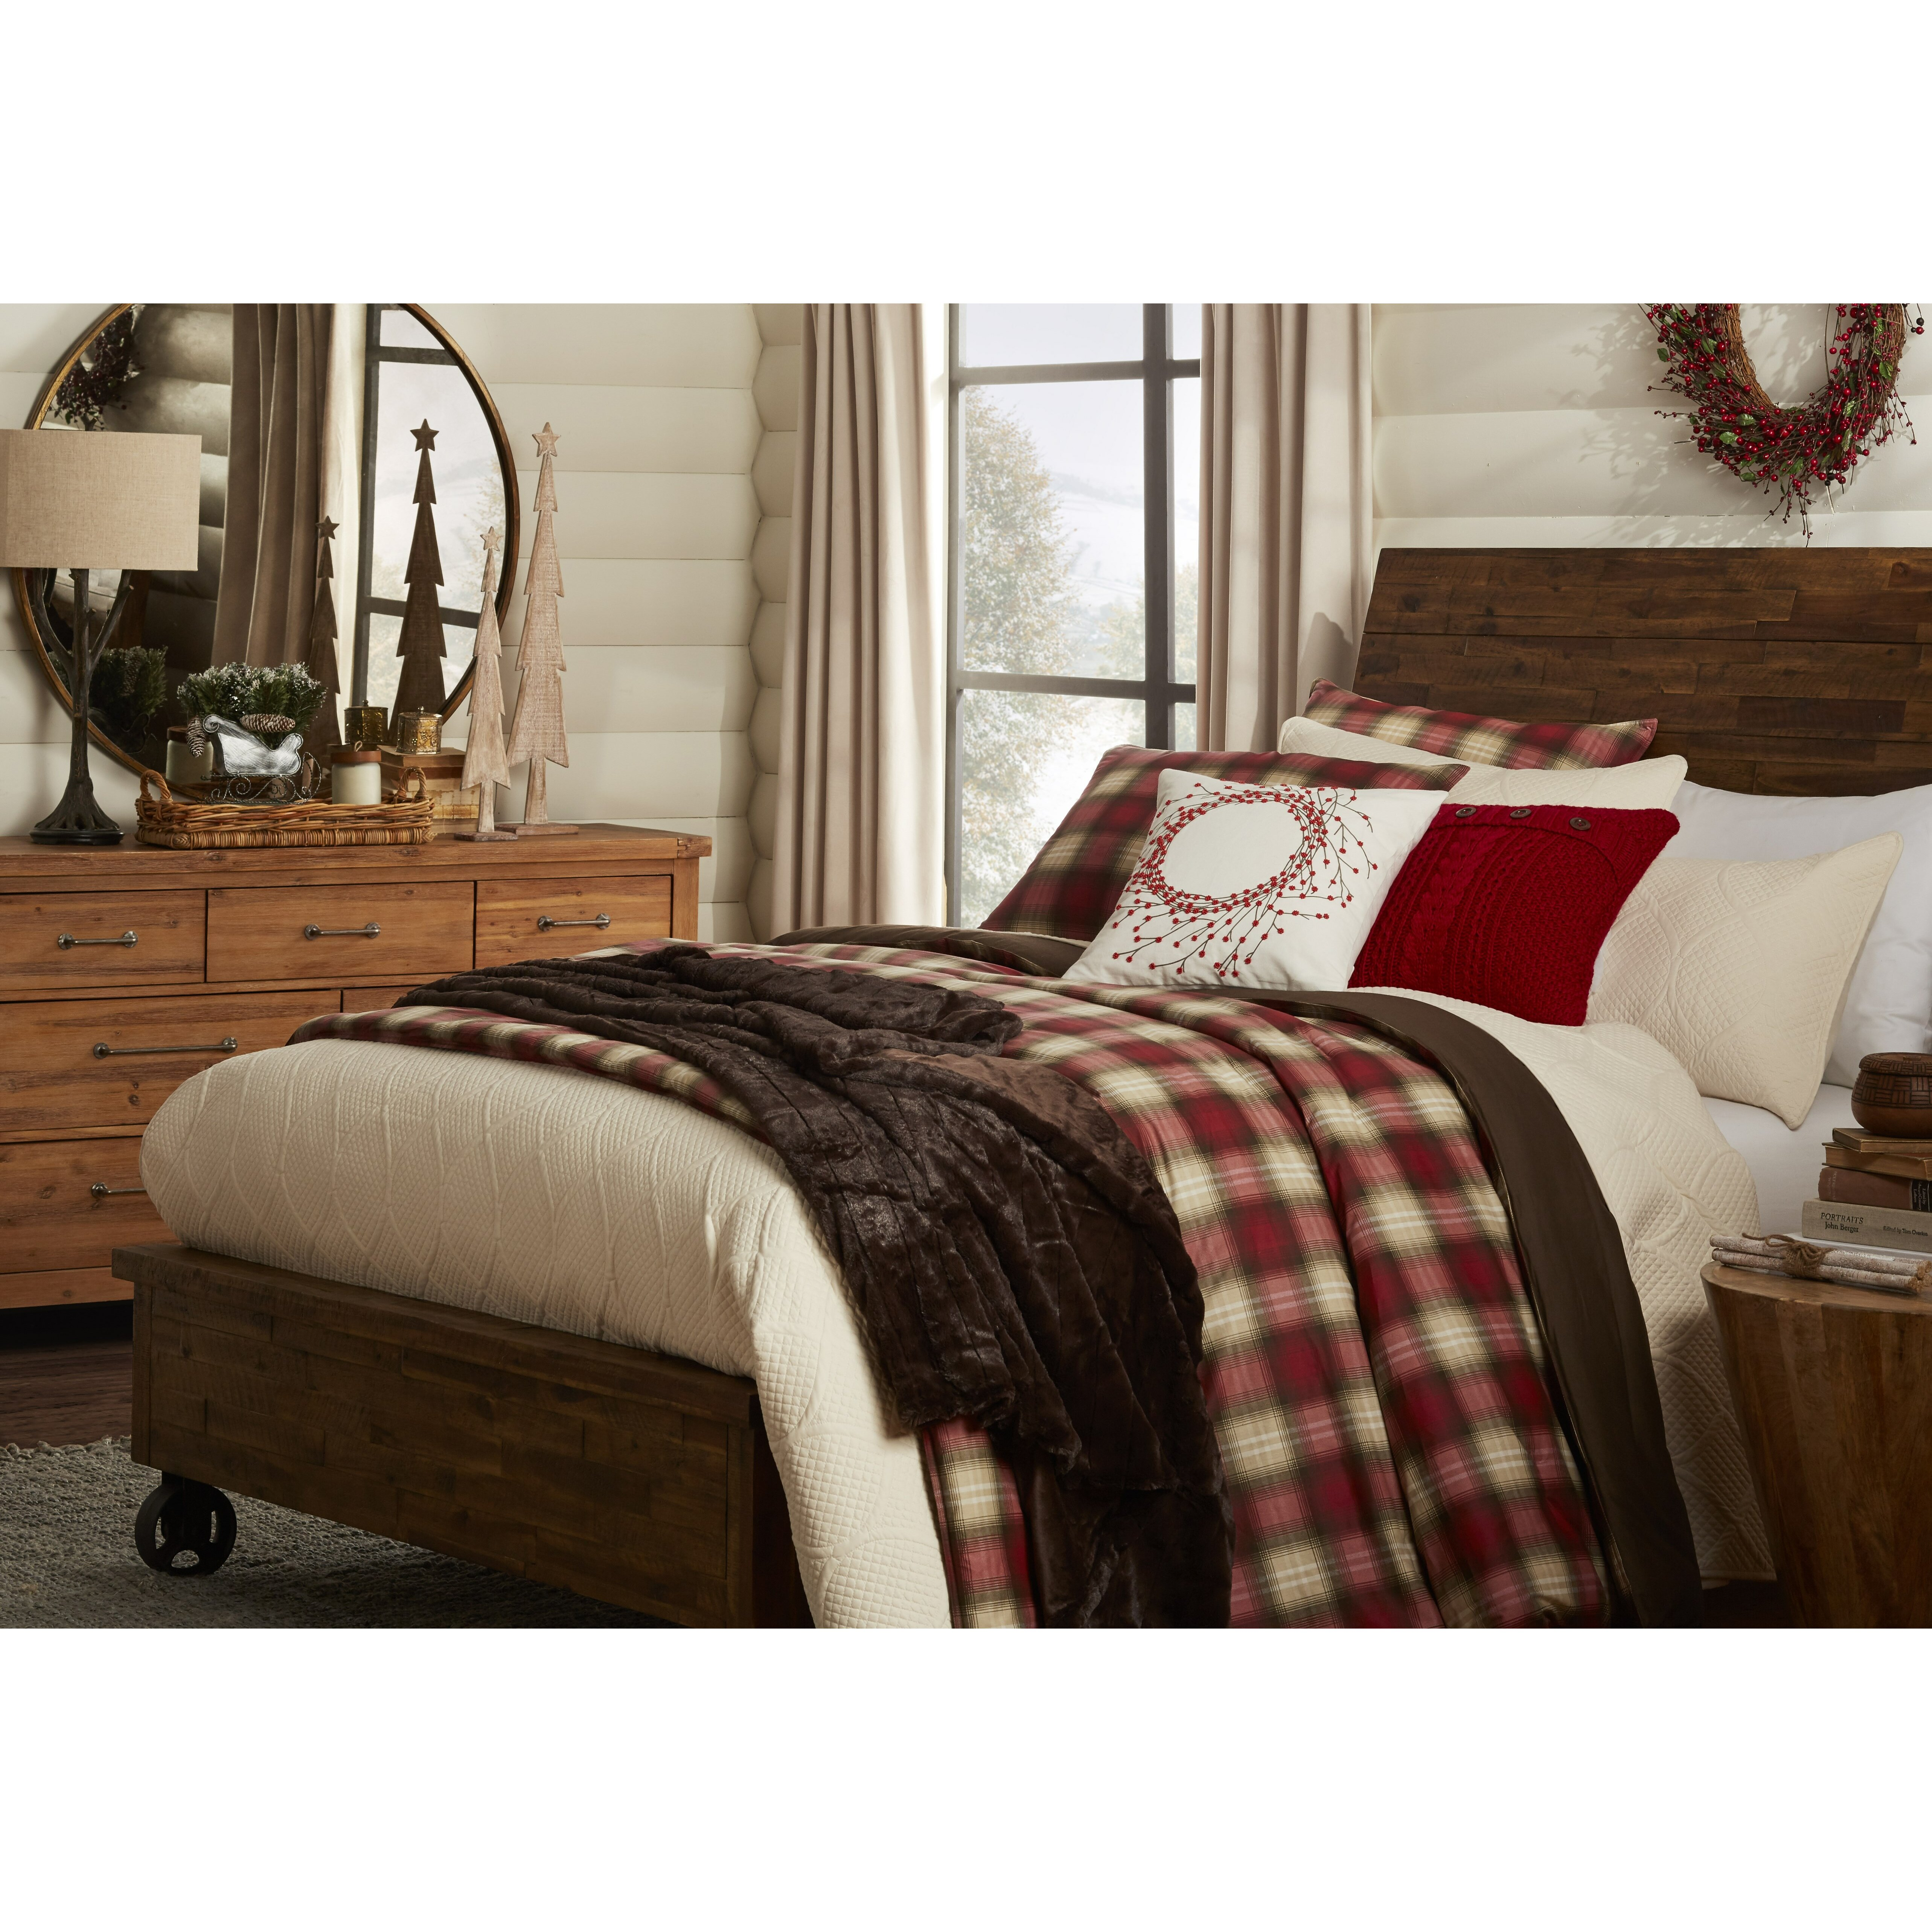 tufted with corner your set brown bed plaid sets bath design faux and for red comfortable headboard bedroom comforter leather decoration fireplace interesting